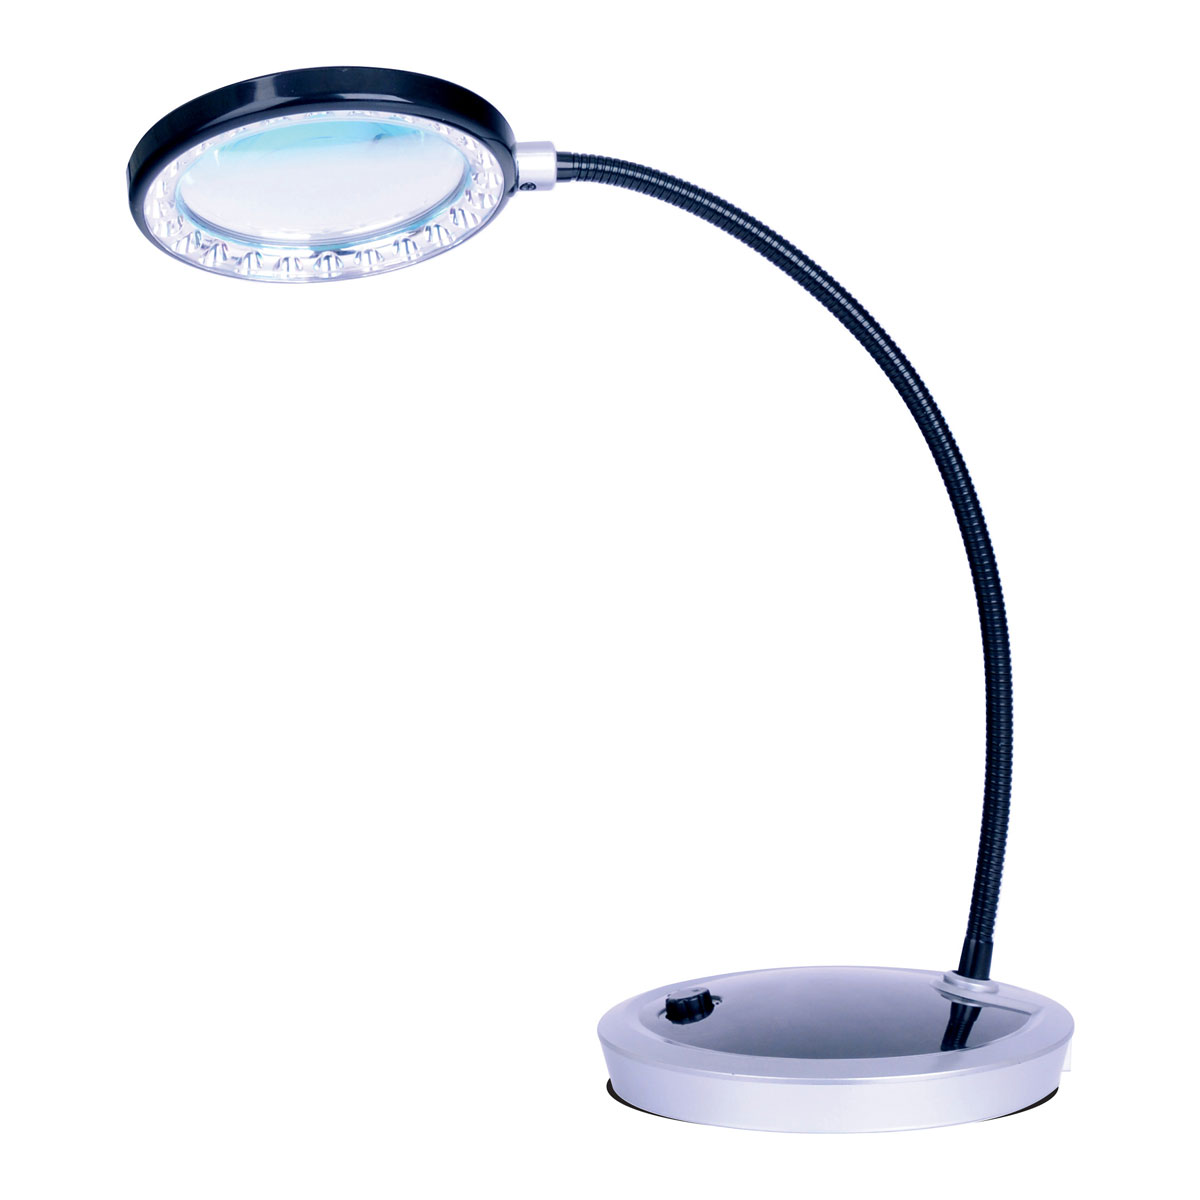 Michaels Craft Floor Lamp: PURElite Deluxe Use Anywhere Magnifying Table Lamp